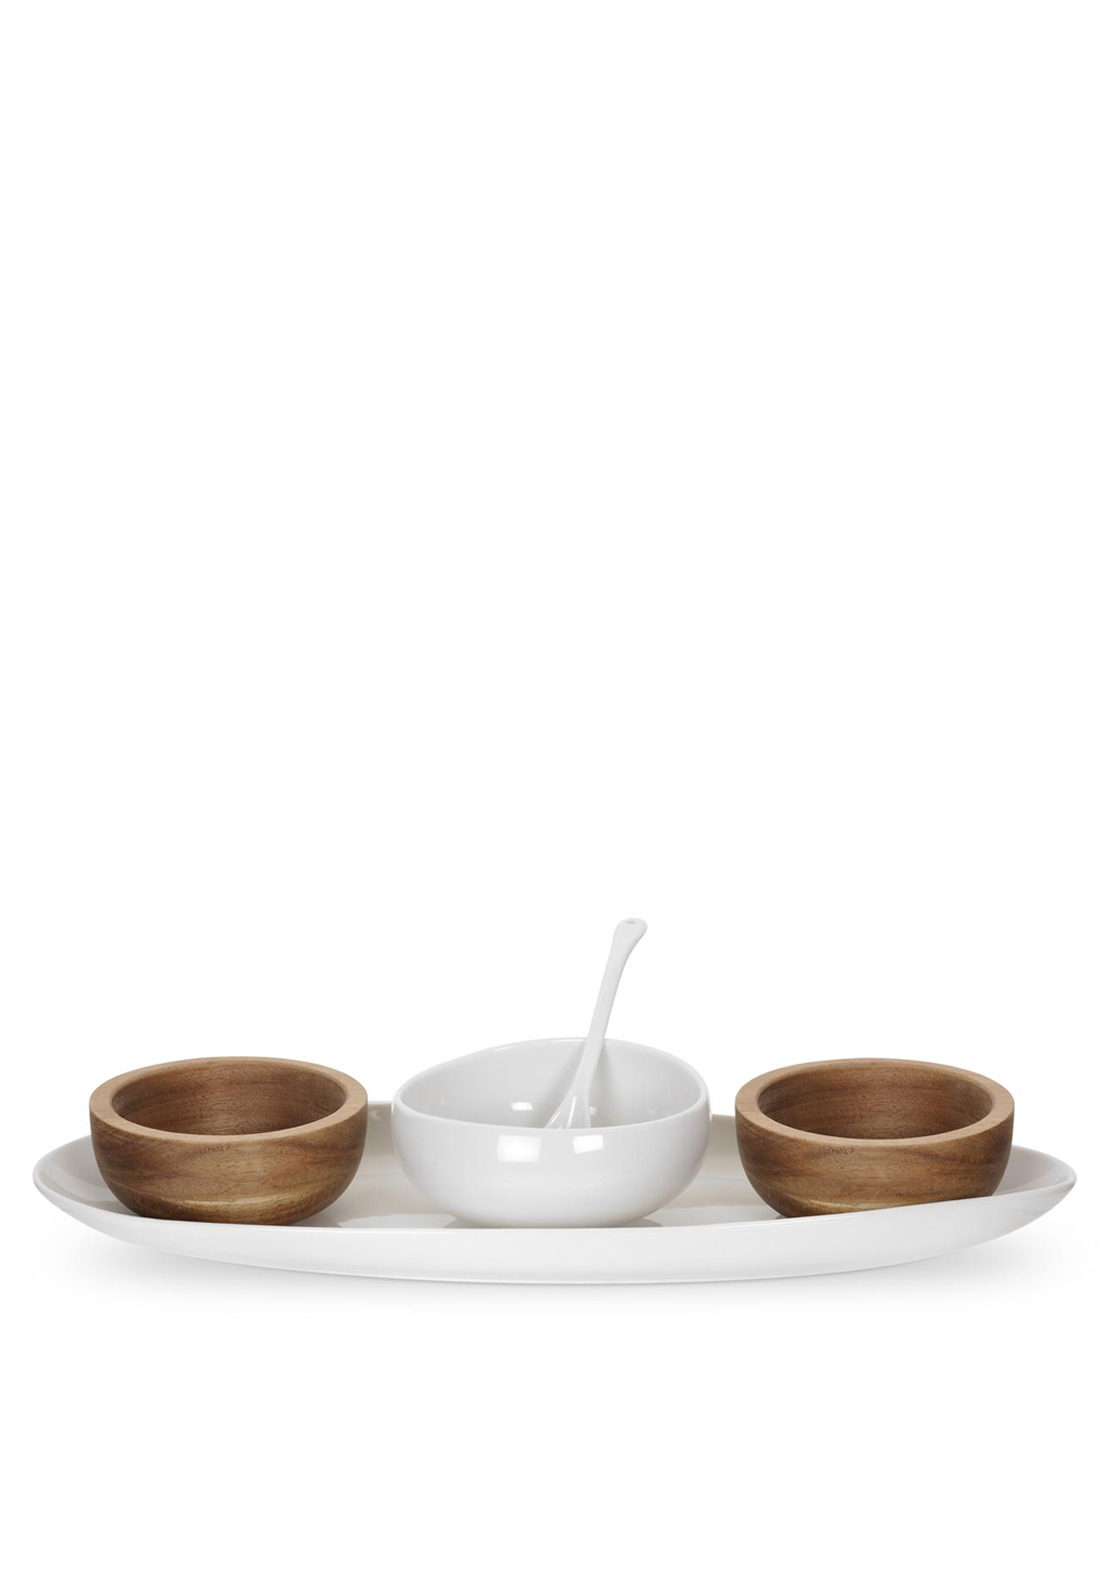 Portmeirion Five Piece Serving Set, White & Brown